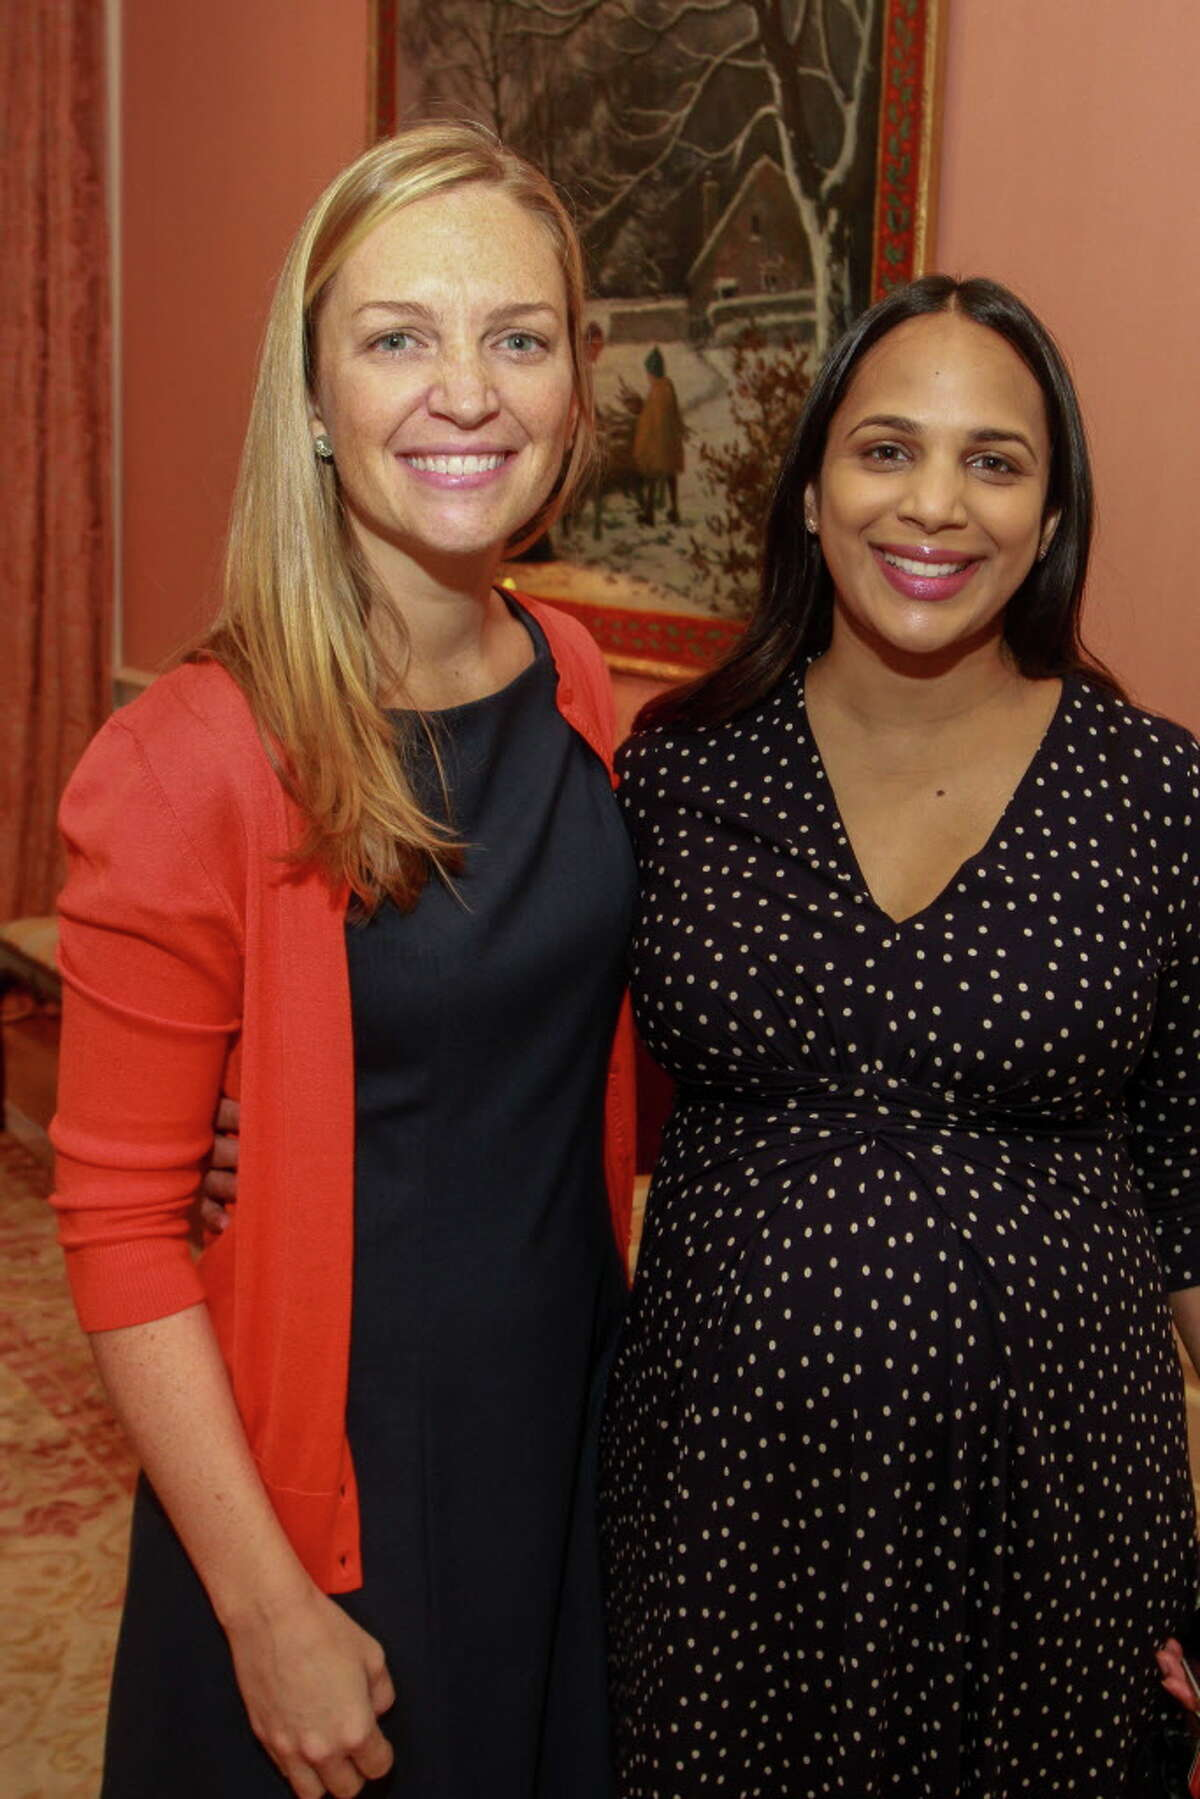 Caitlin Crotty, left, and Marsha Wadsworth at the Beauty in Motion luncheon at the Junior League of Houston. (For the Chronicle/Gary Fountain, September 15, 2017)